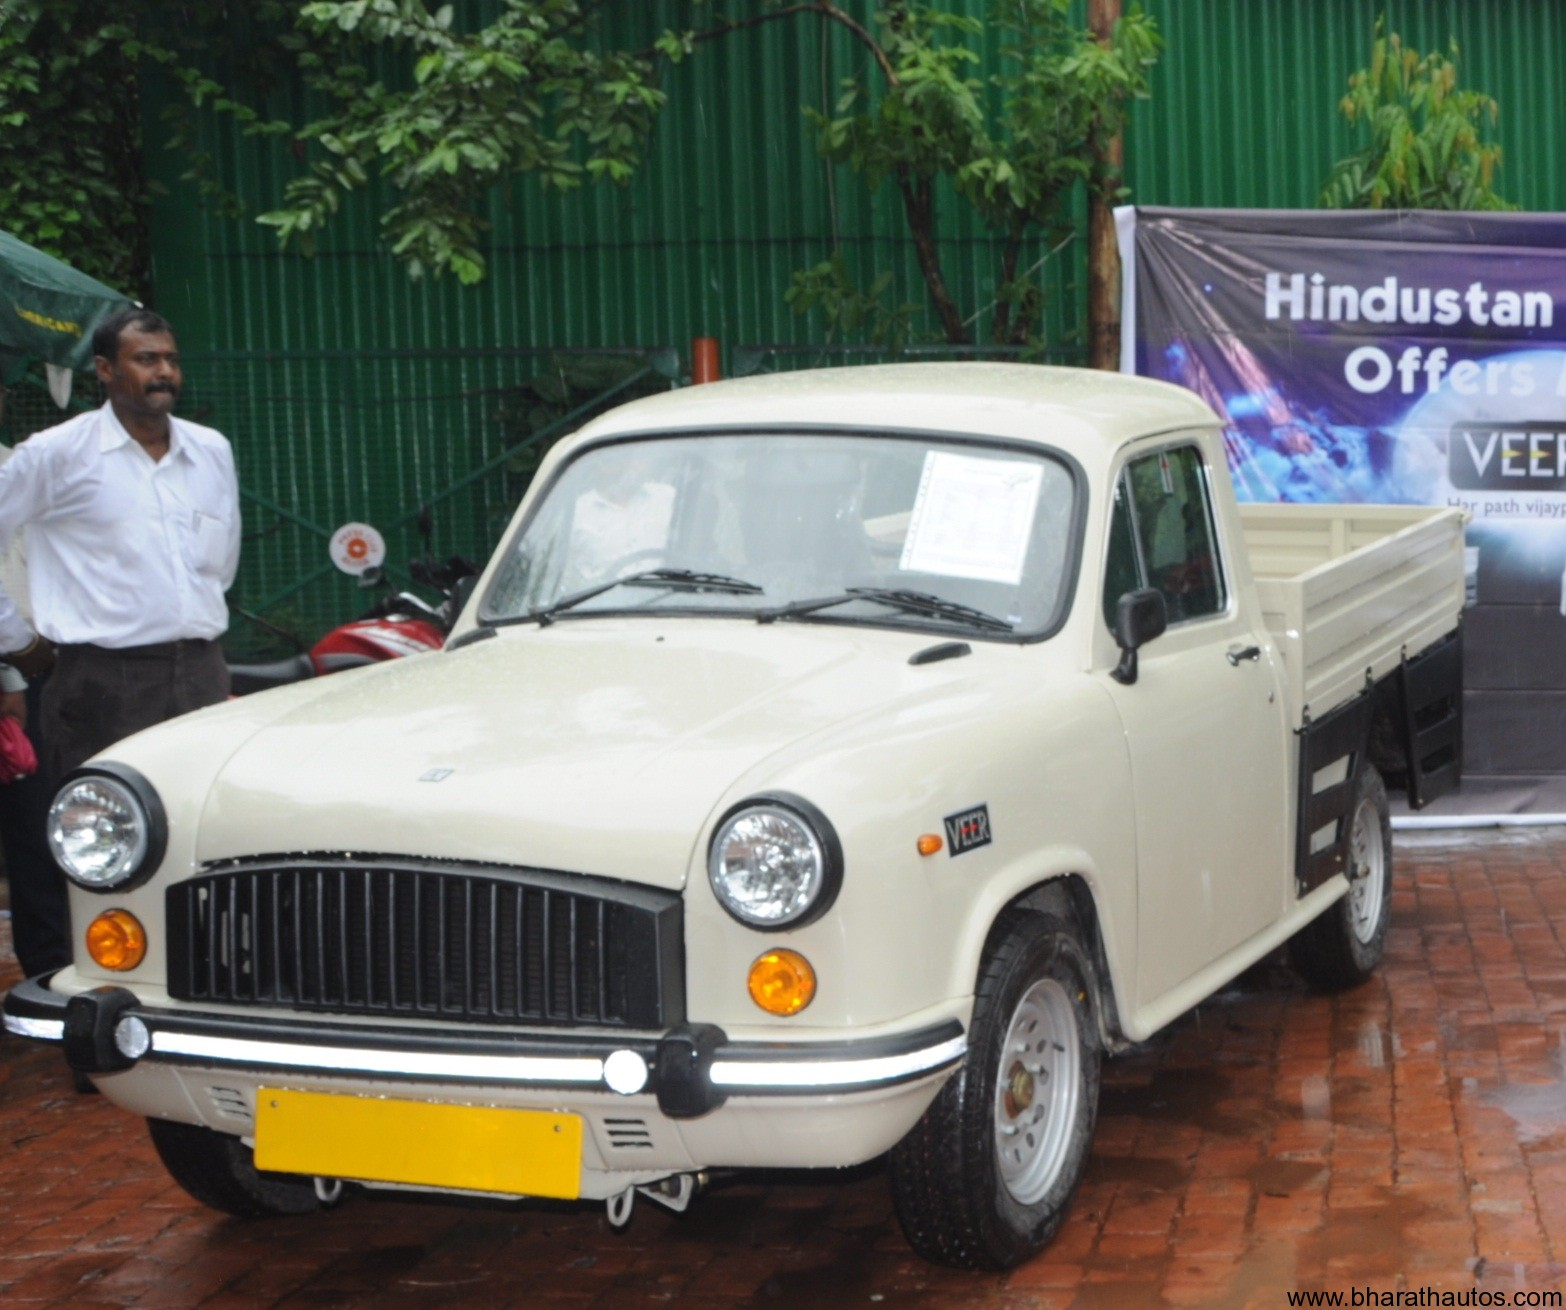 Hindustan Motors Launches Veer The Pickup At Rs 3 30 Lakh